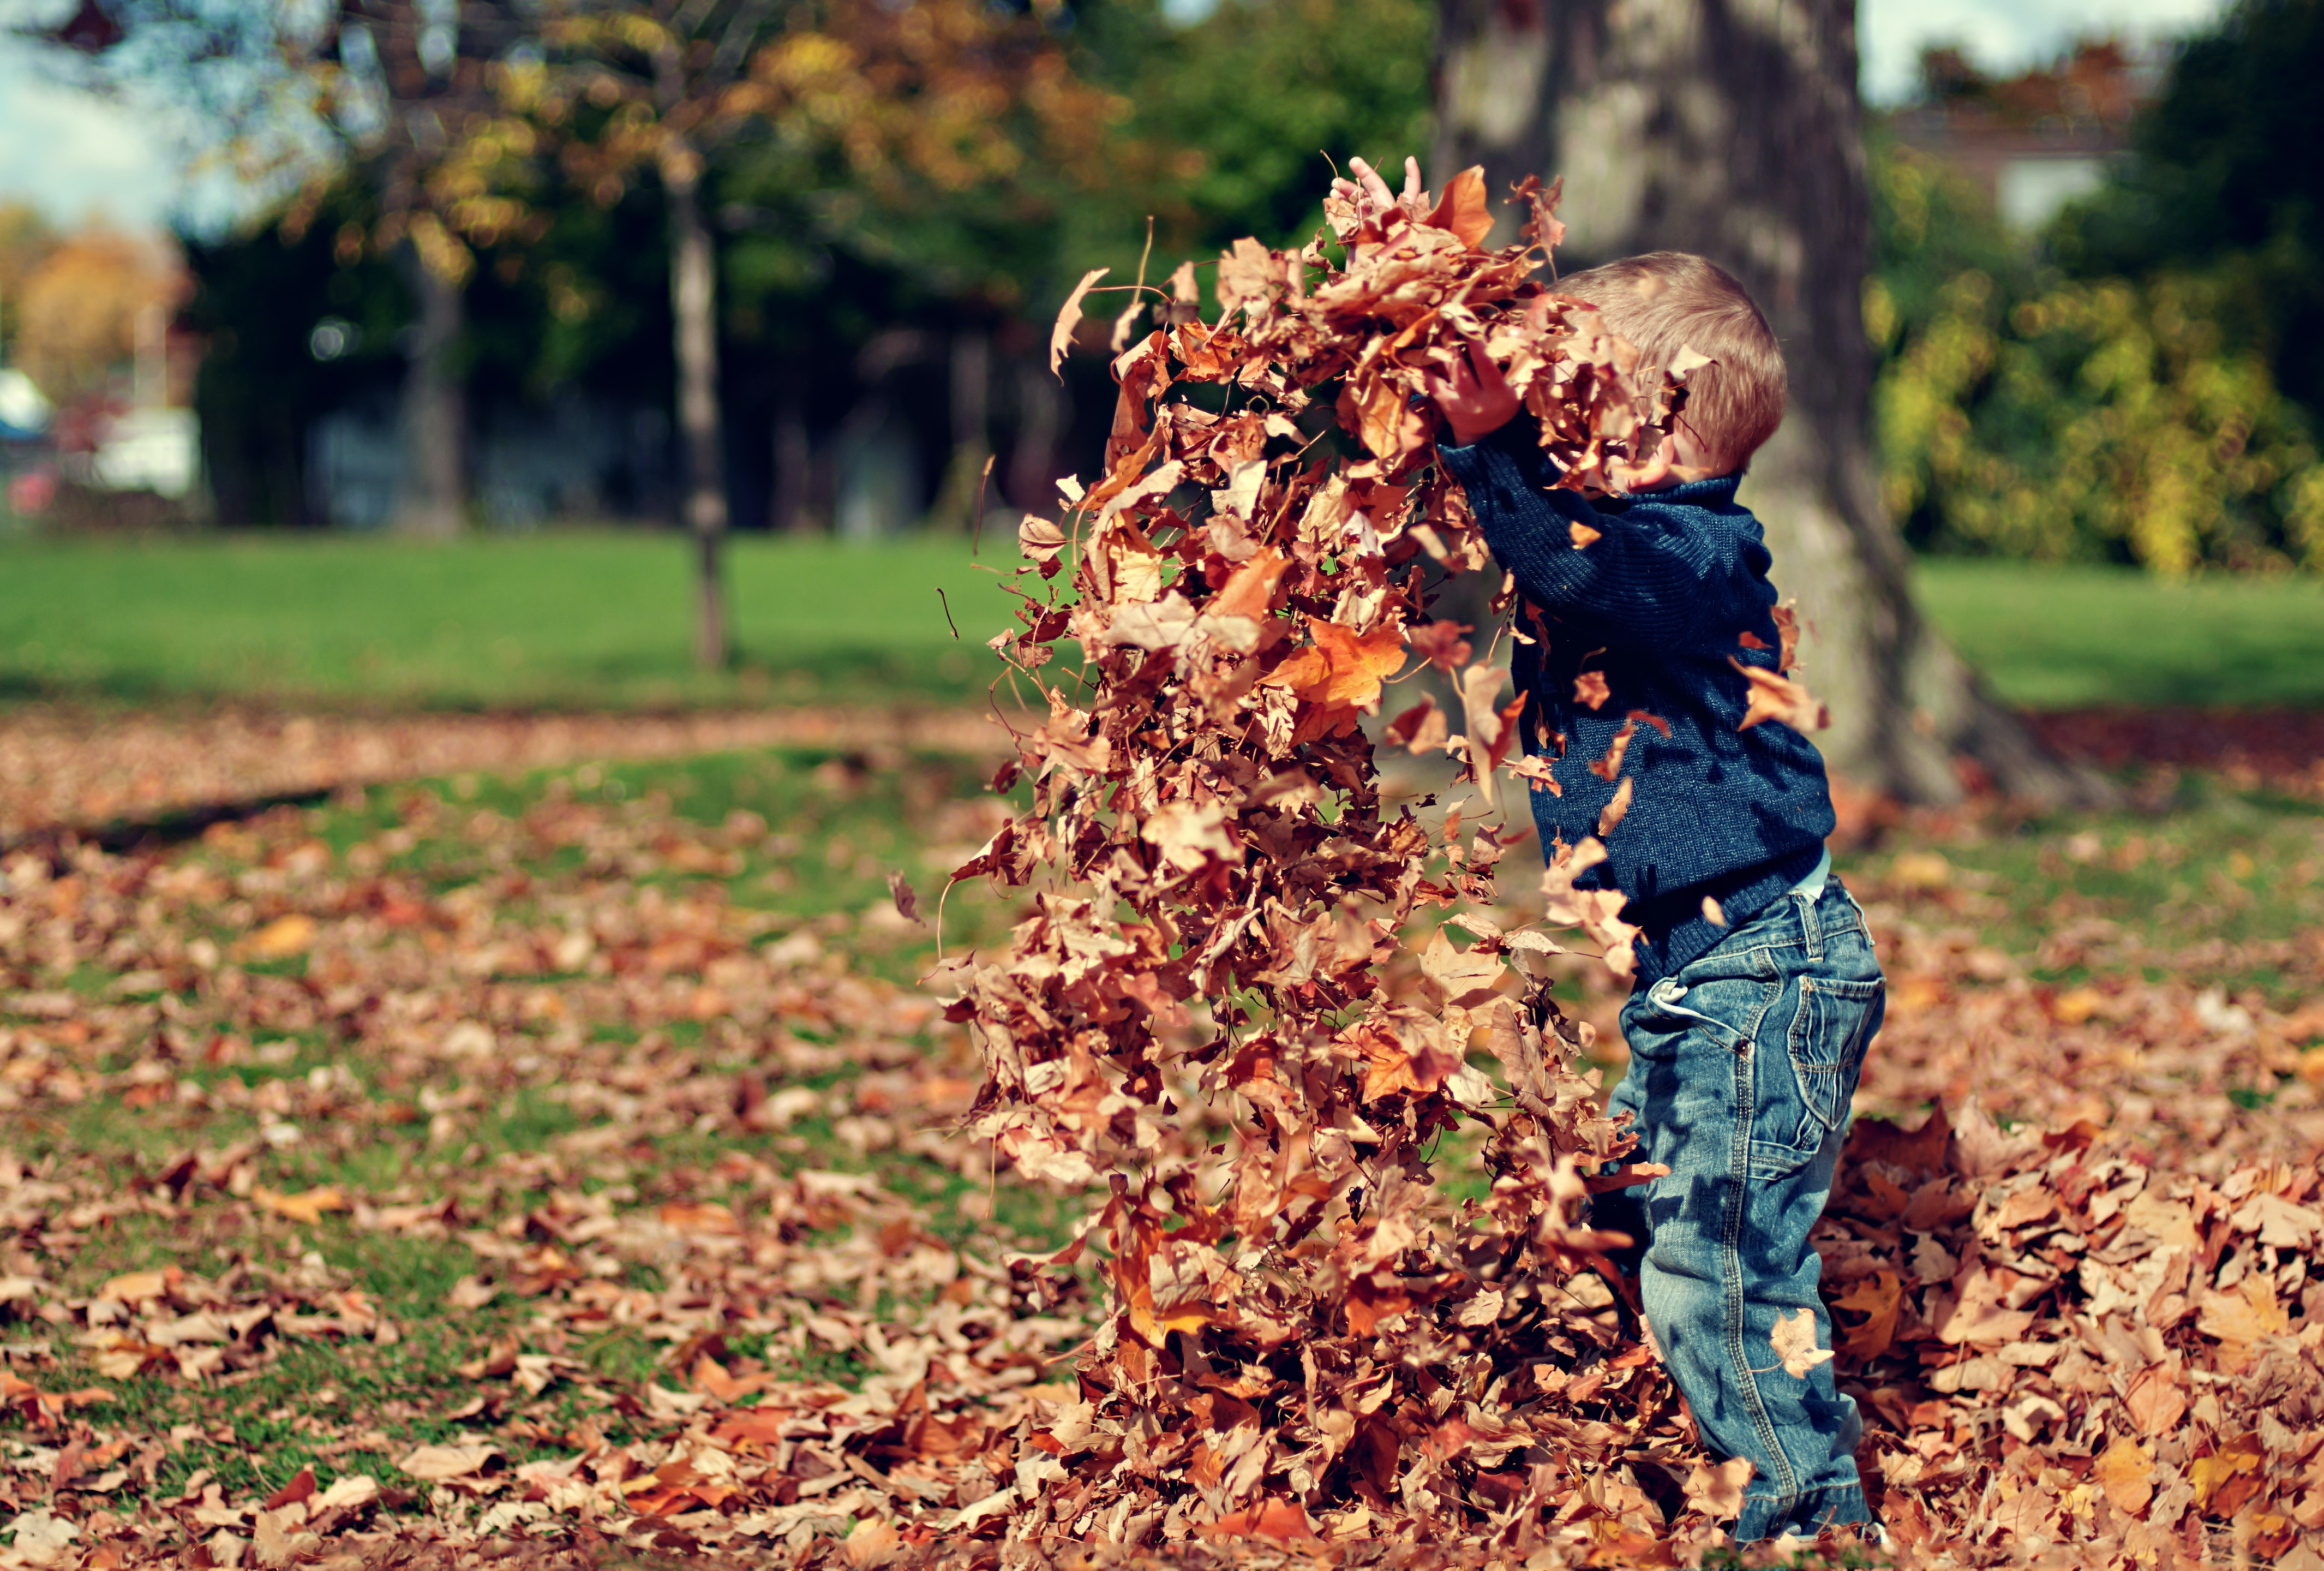 A little boy throwing leaves up in the air during fall